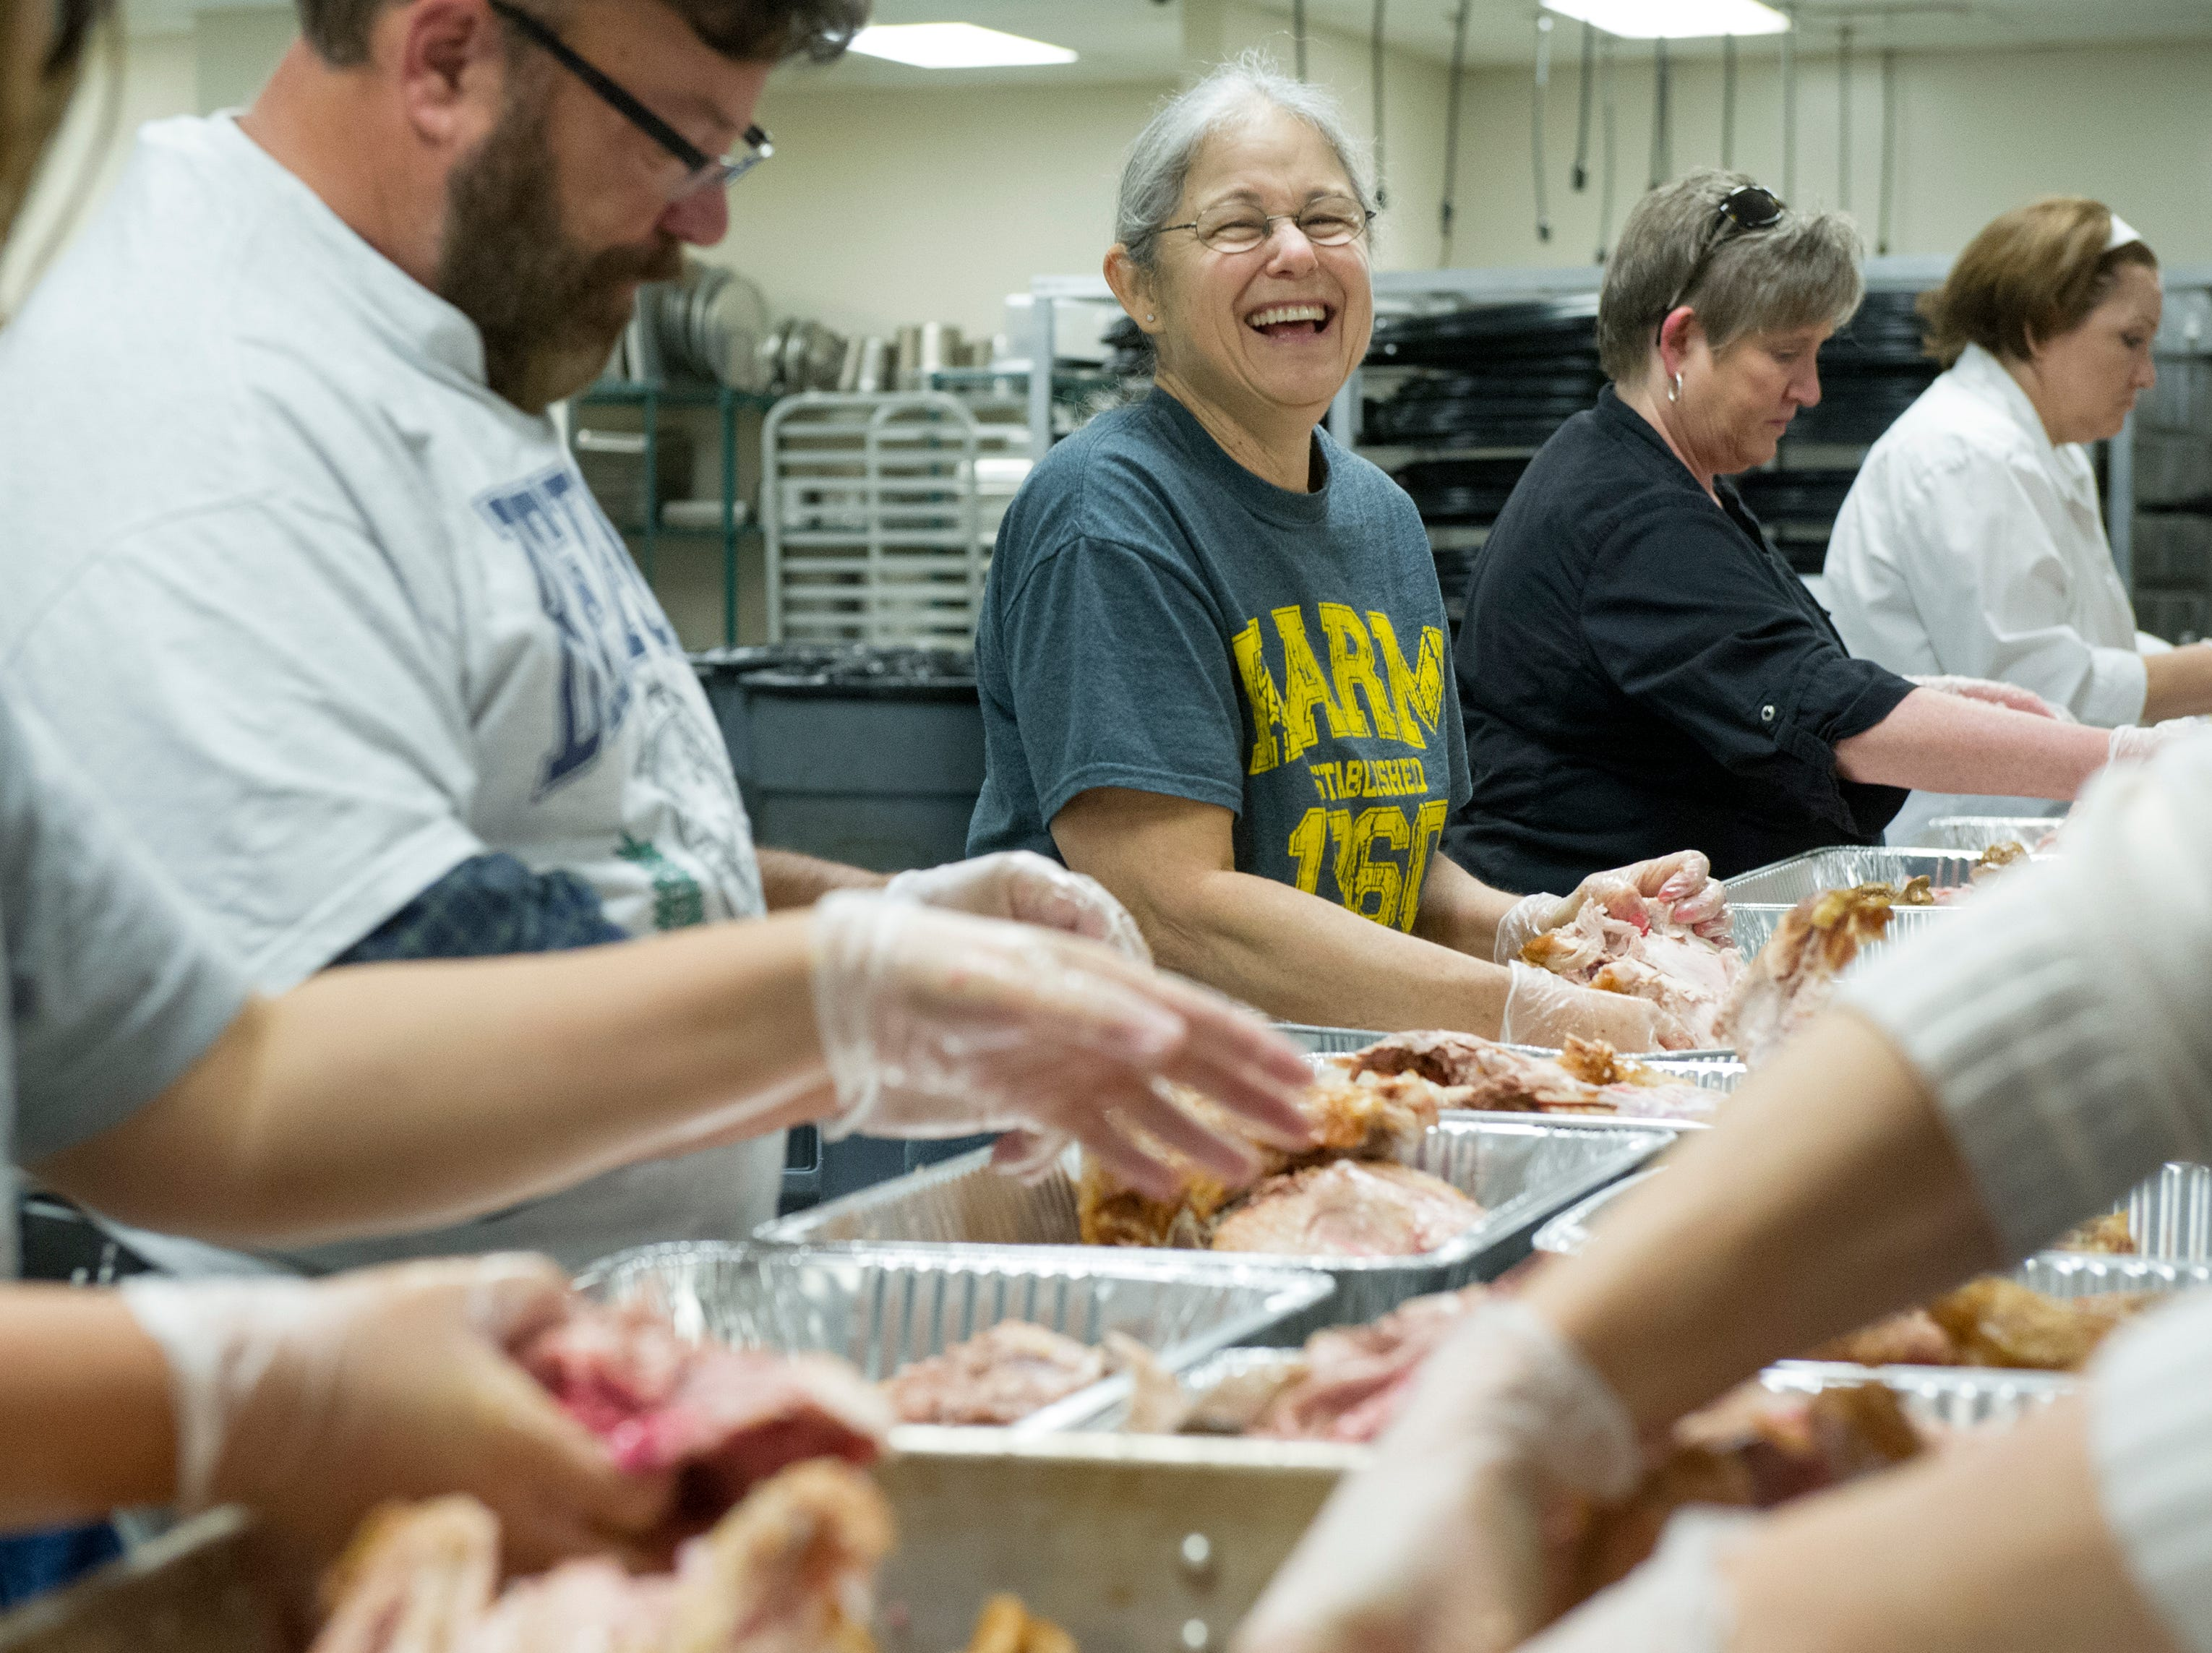 KARM volunteer Carolyn Rosen (center) enjoys the company of her fellow volunteers during the preparation of 100 turkeys for KARM's Thanksgiving meal at the Knoxville Convention Center Saturday, Nov. 21, 2015.